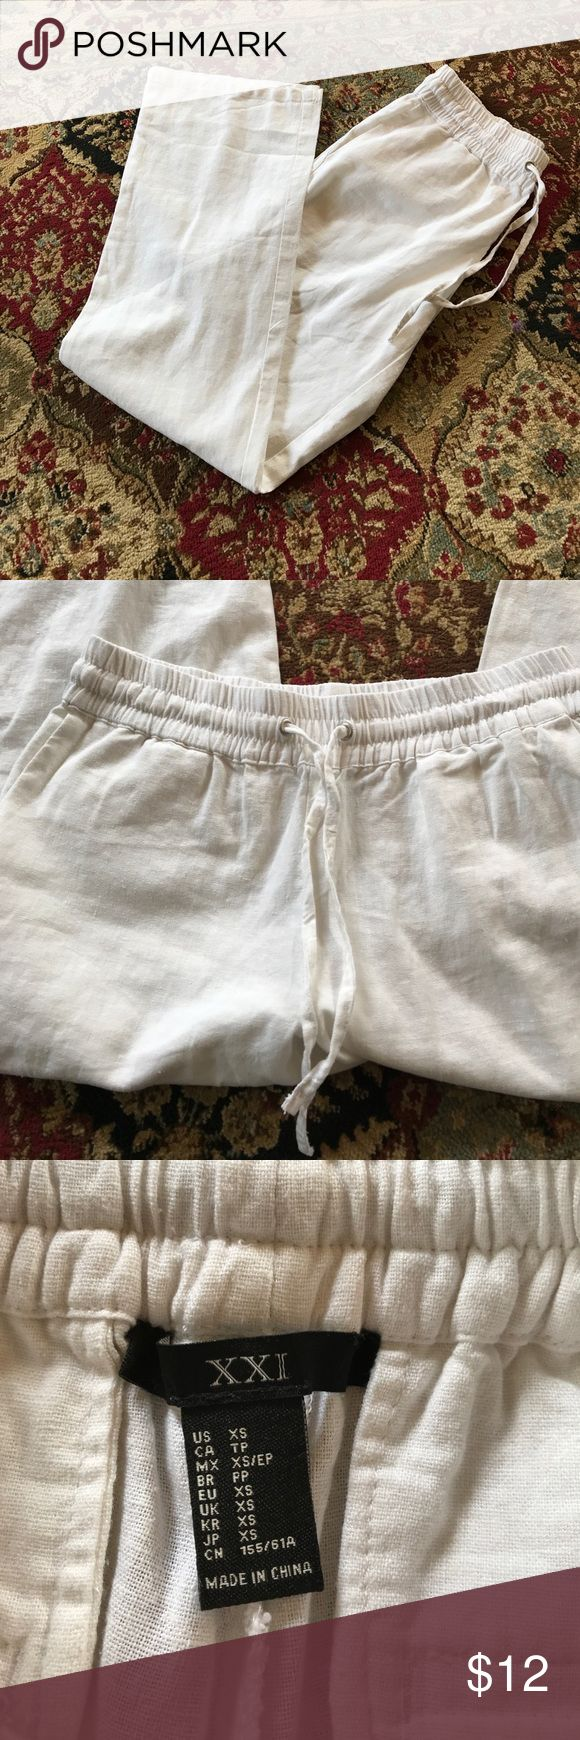 NWT F21 White beach pants NWT!!! I have a black pair and they are incredibly comfy! Great for lounging or can be dressed up! Forever 21 Pants